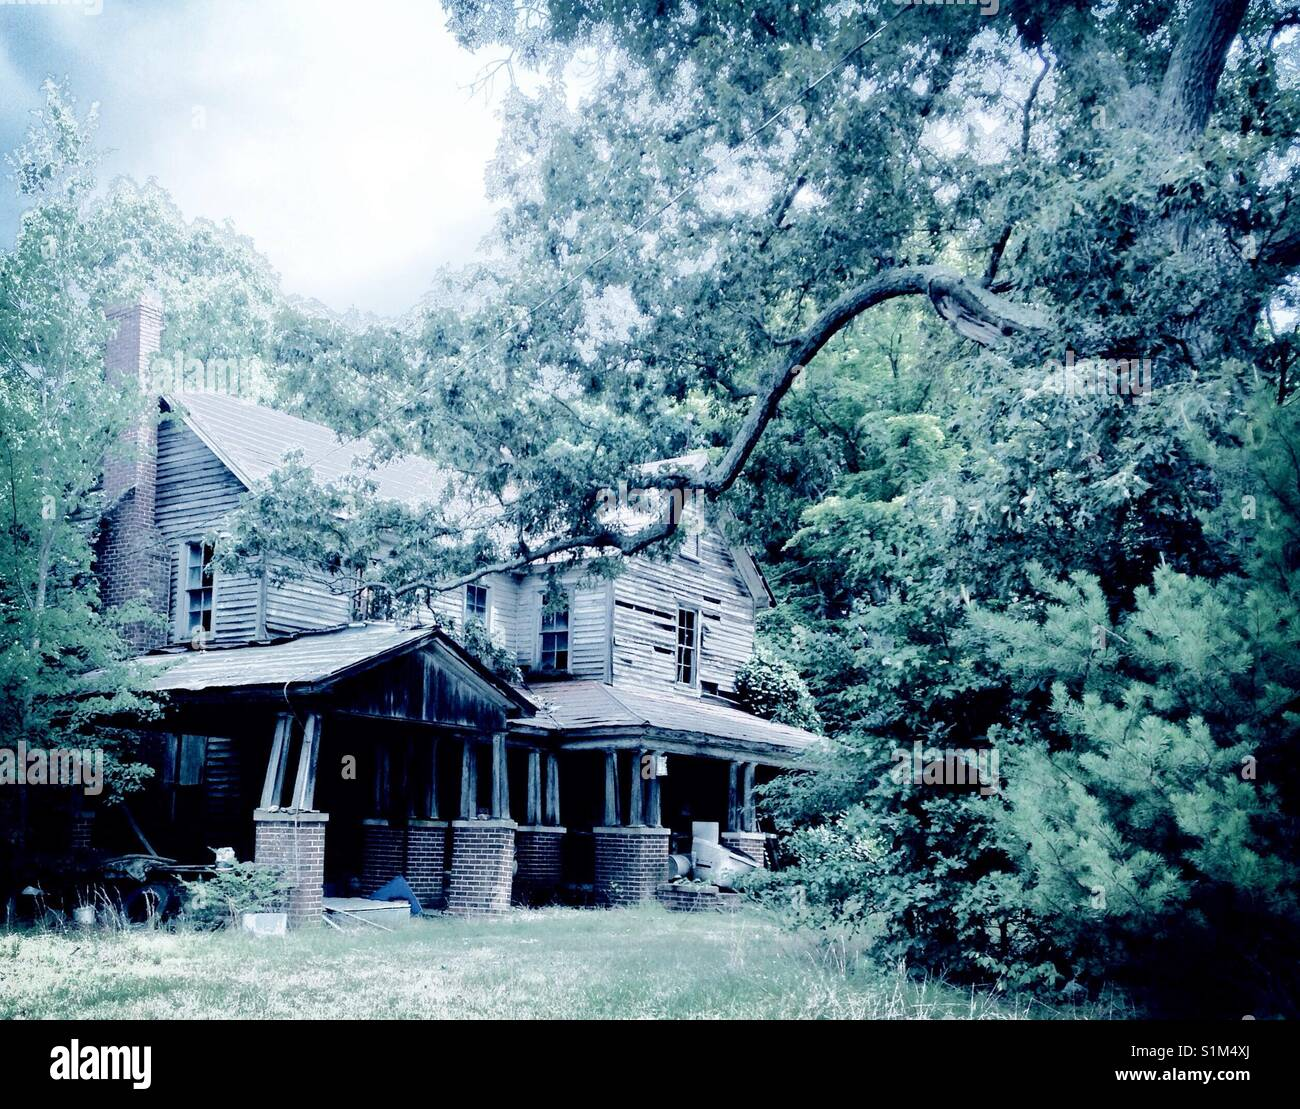 Abandon- old decrepit farmhouse - Stock Image